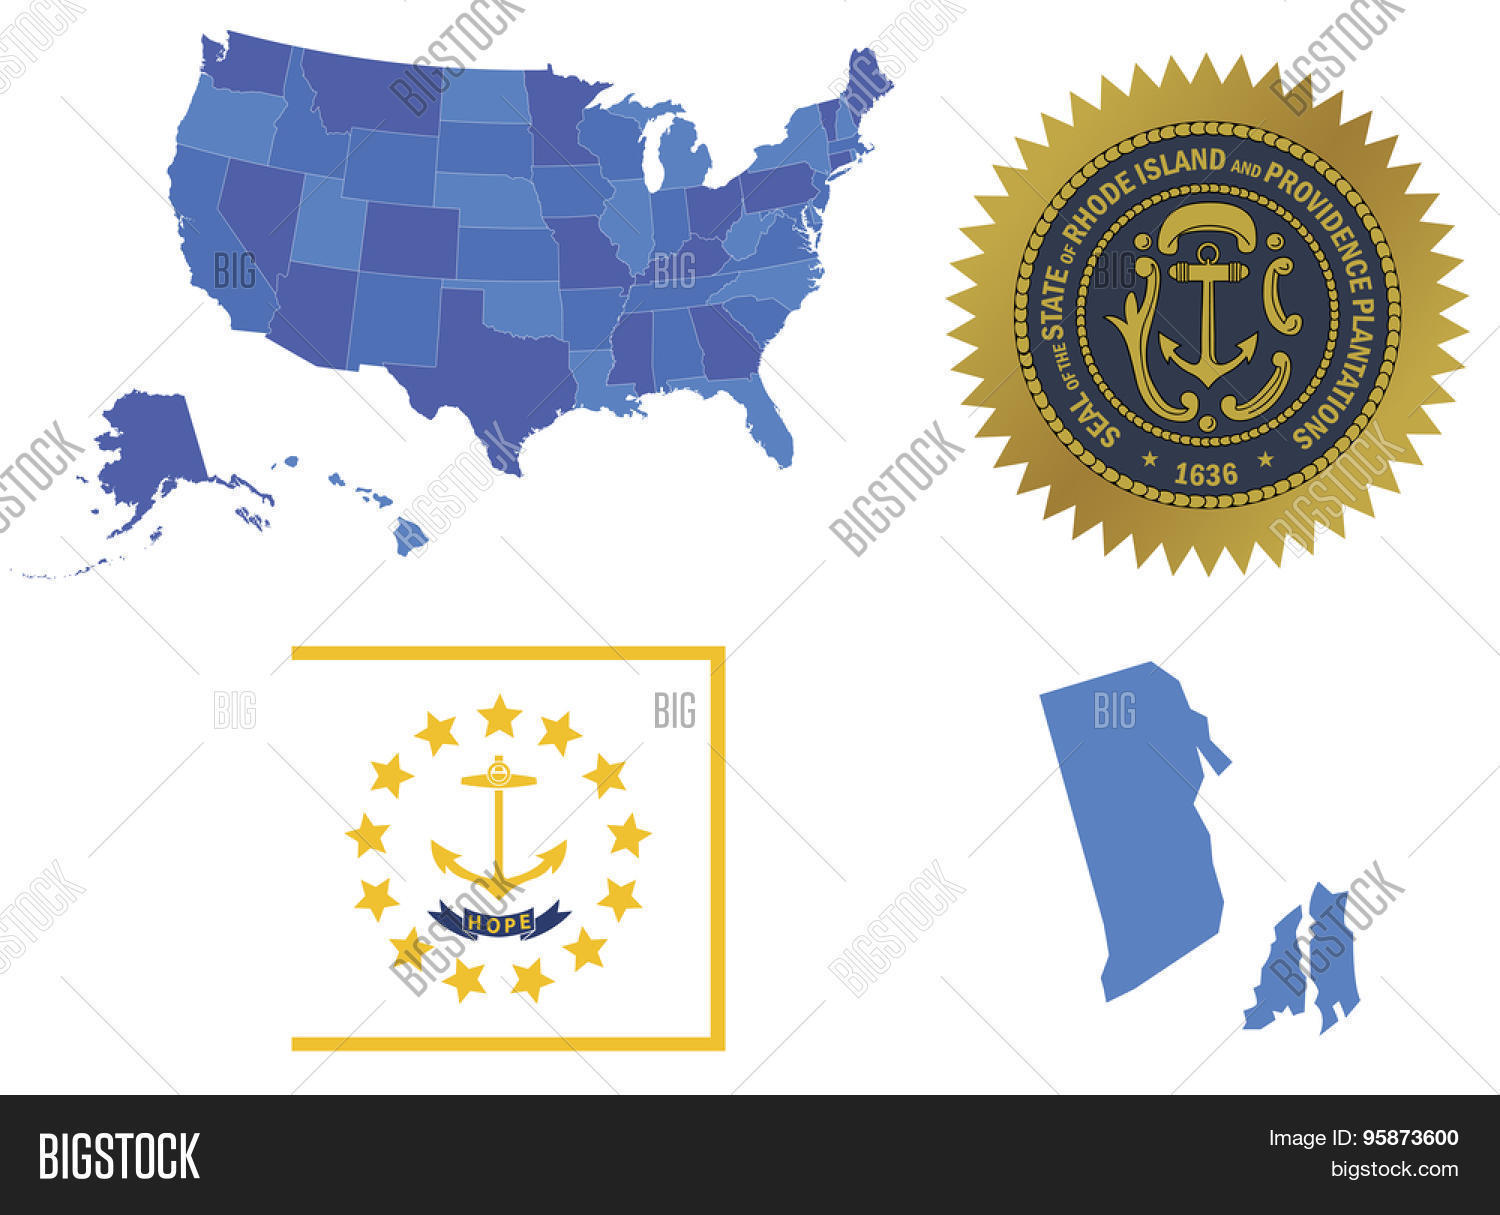 Vector Illustration Of Rhode Island State Contains High Detailed - Rhode island in usa map